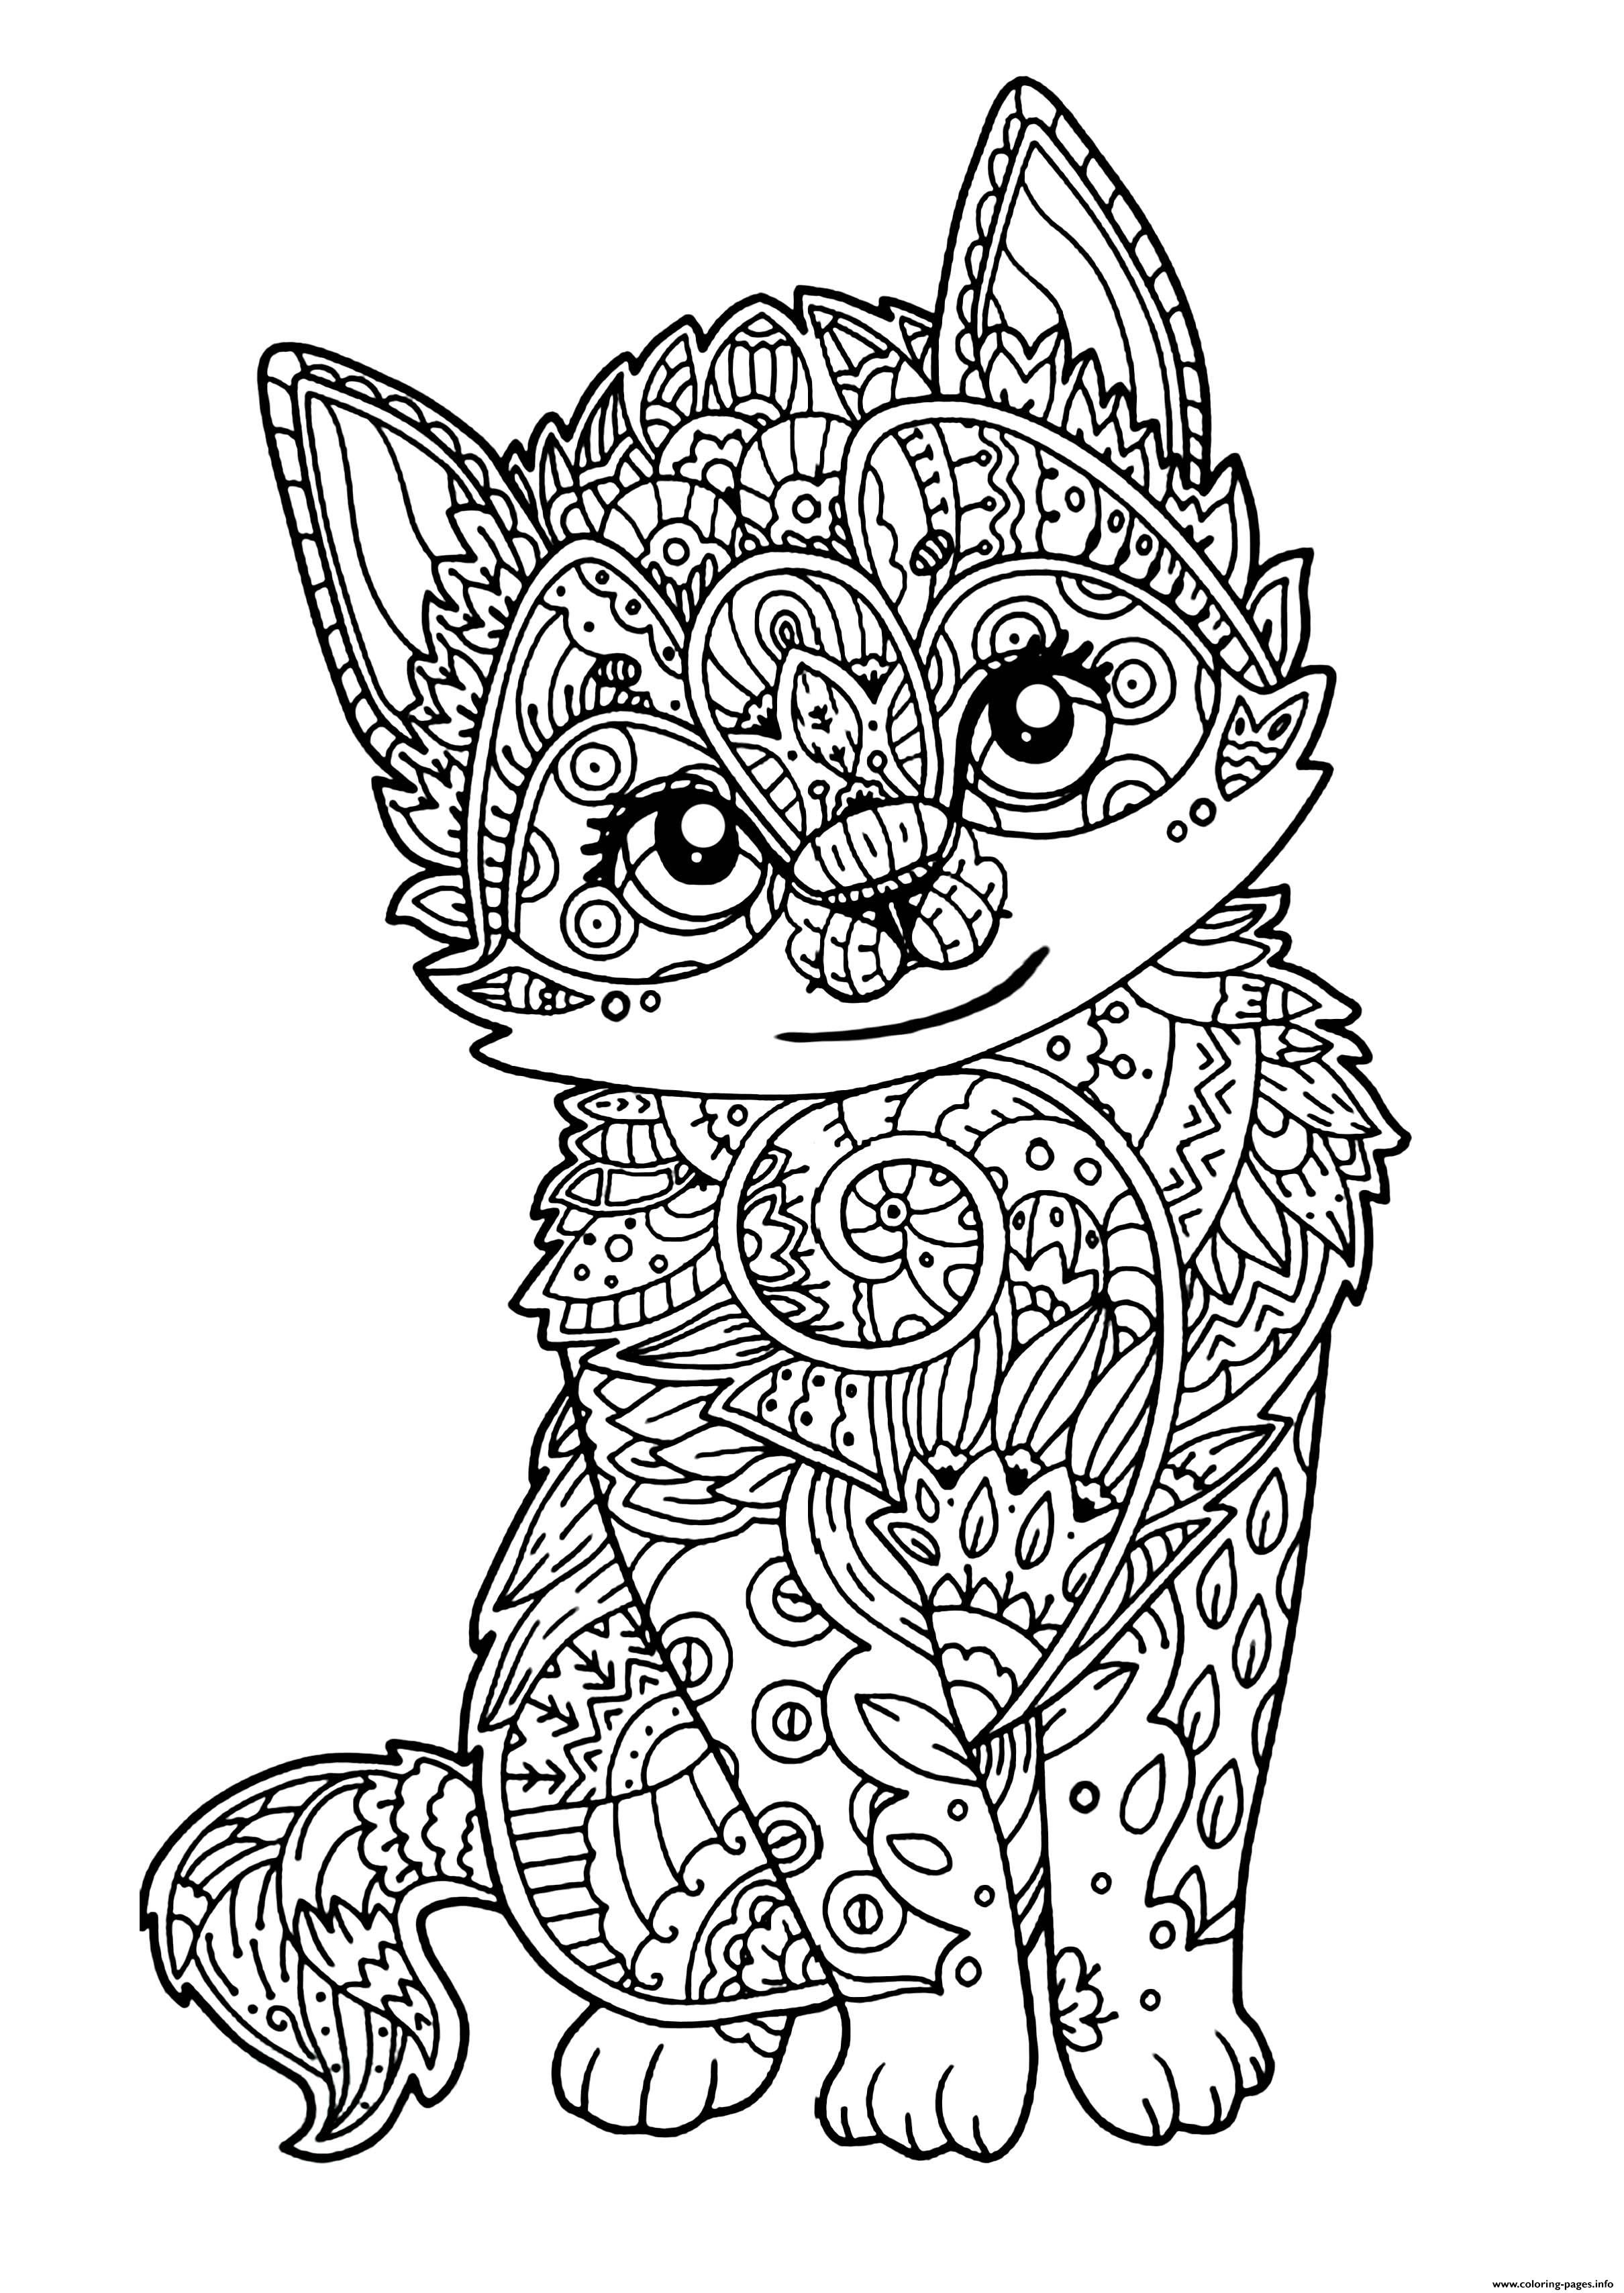 Coloring Pagesfo Cute Cat Adult Zentangle